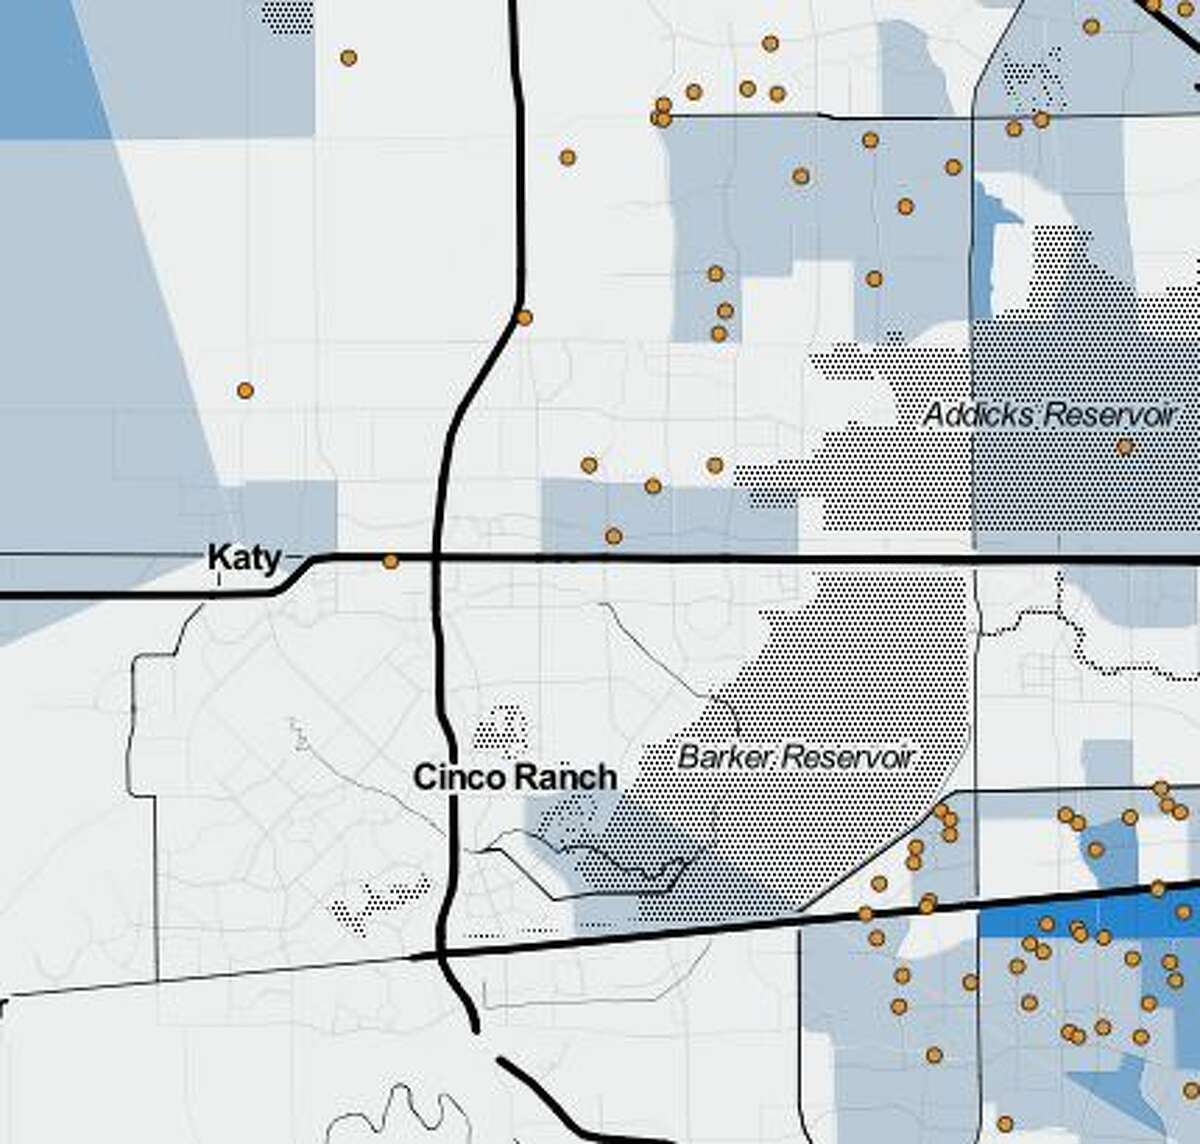 Katy/Cinco RanchEach orange dot represents 100 households receiving vouchers. Areas shaded with darker blue colors indicate a higher poverty rate in that area.